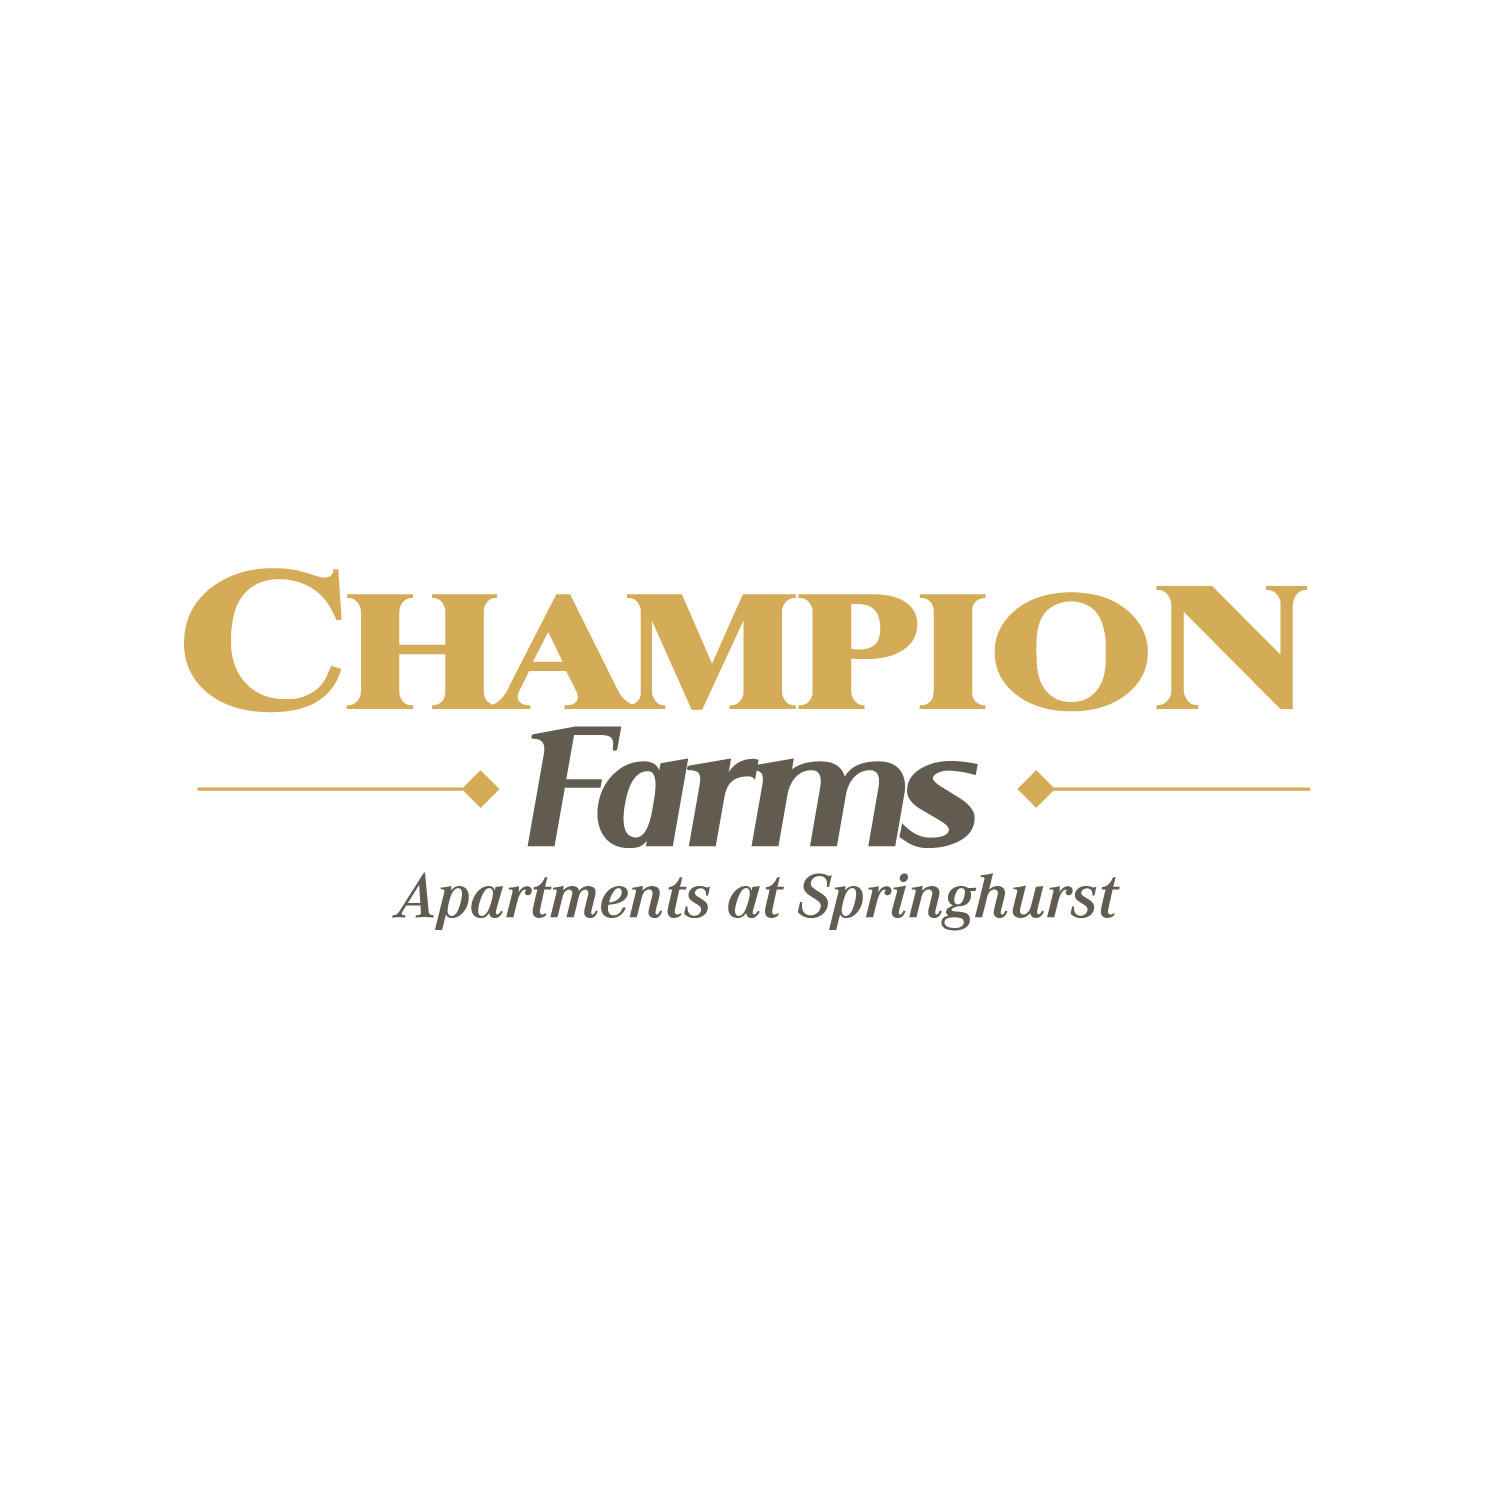 Champion Farms Apartments